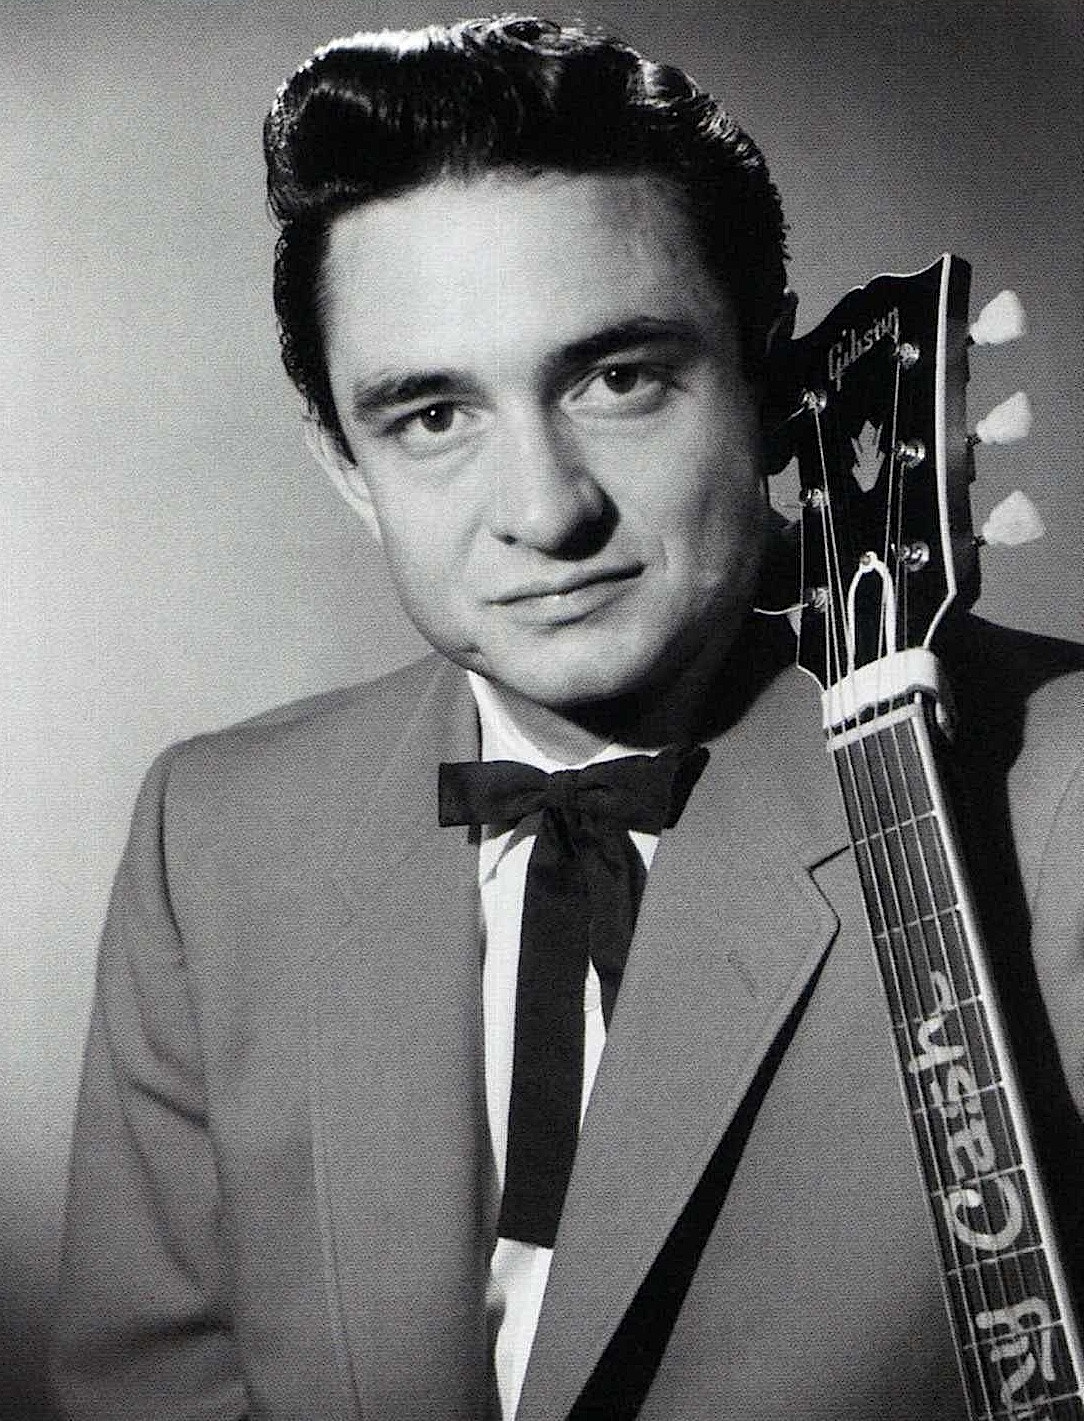 """johnny cash Though it was not included in the original book, johnny cash's lyrics to """"them  double blues,"""" set to music by john mellencamp, are a highlight of the album."""